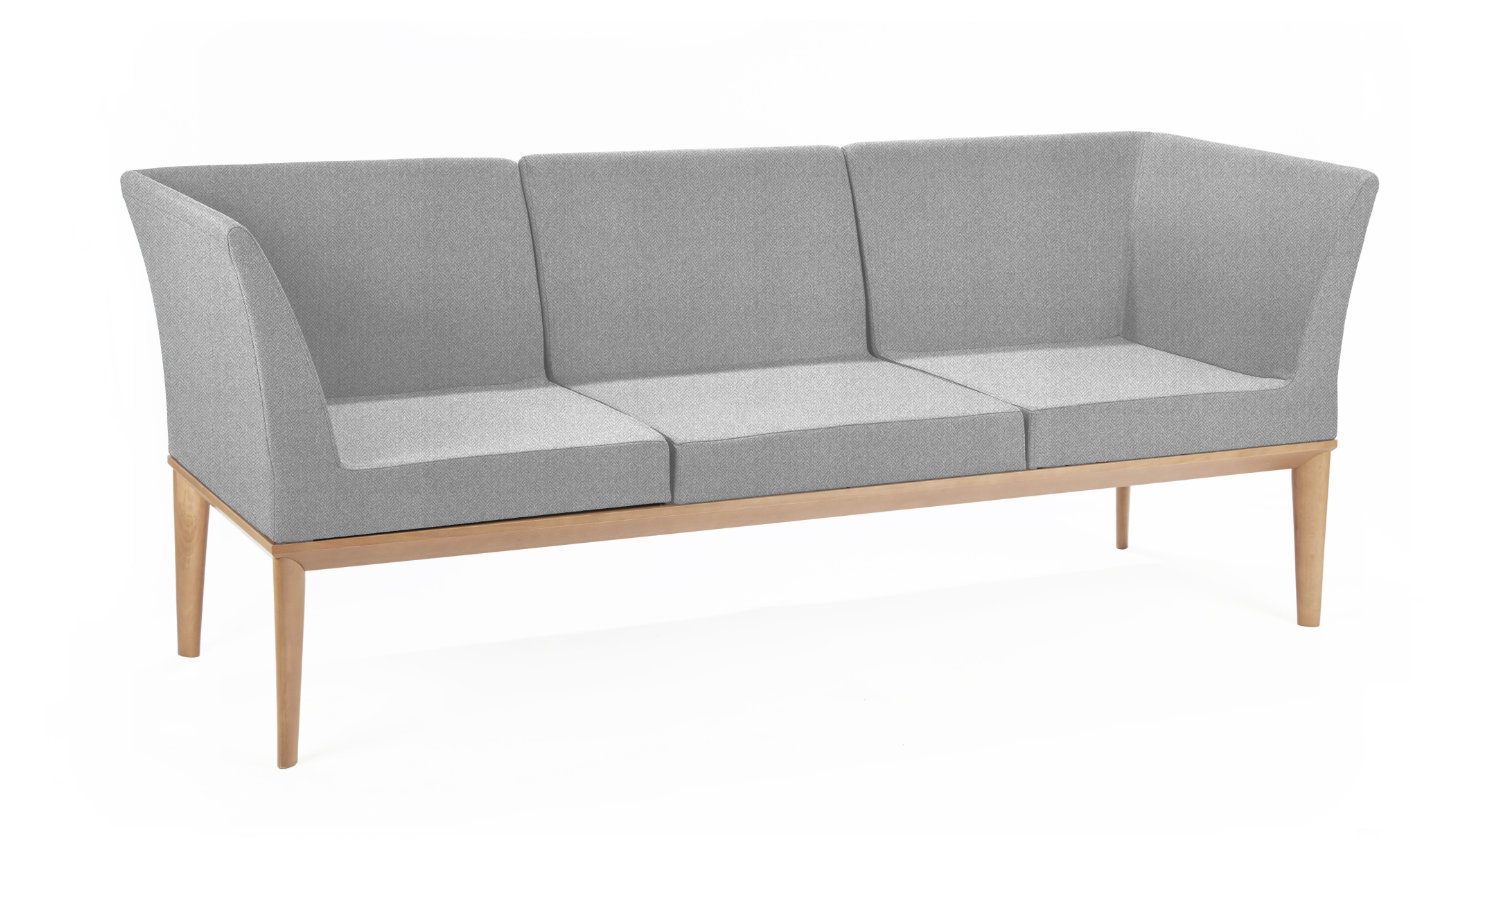 office soft seating grey for 3 people